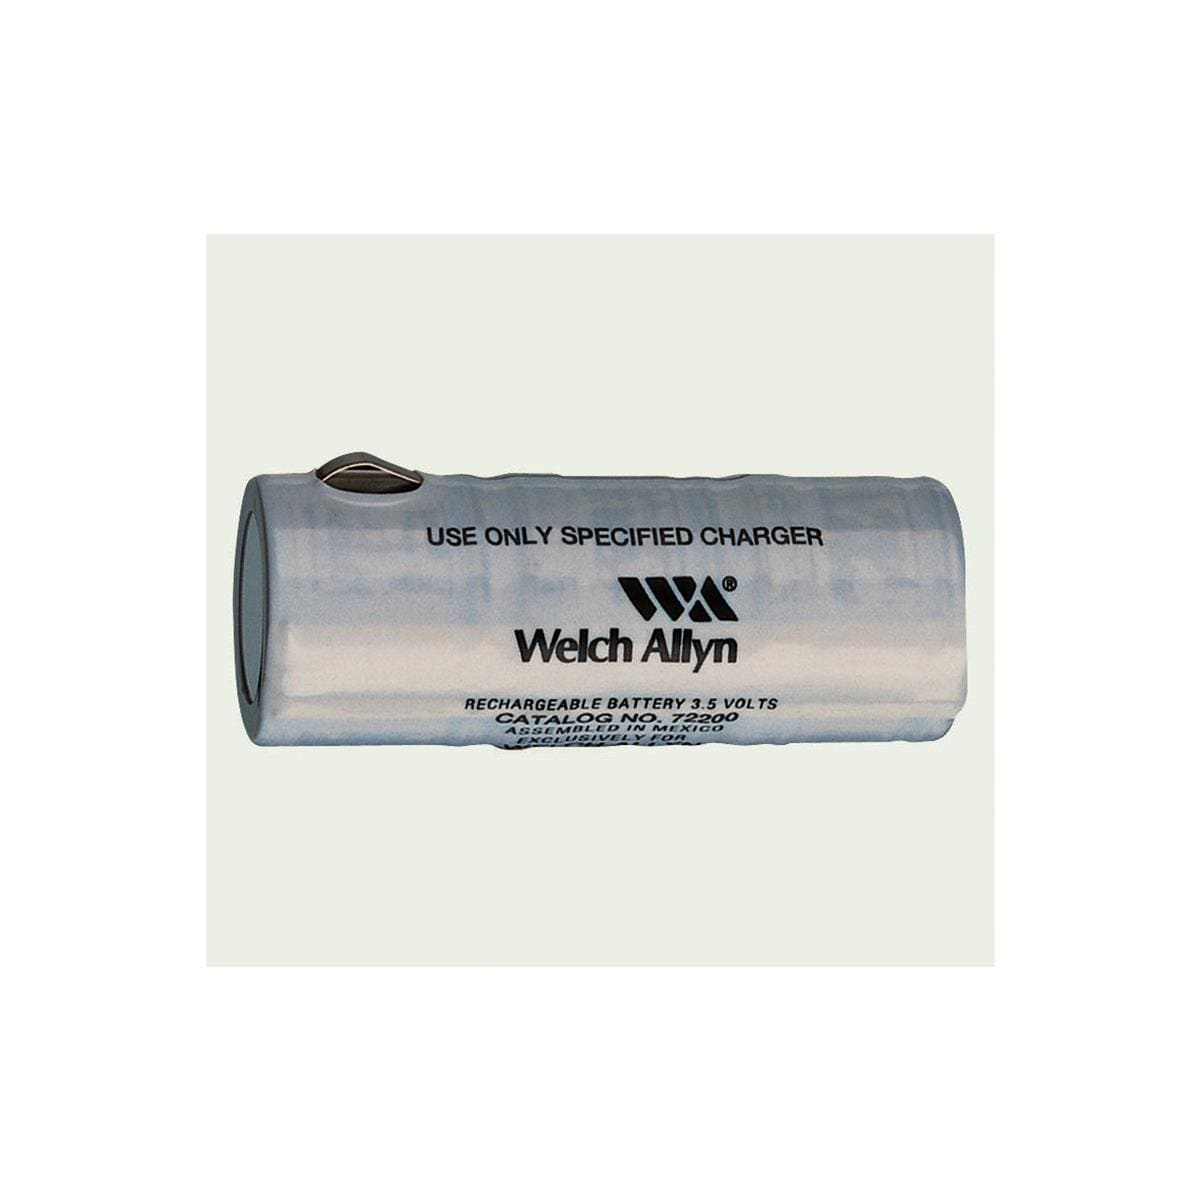 3.5v Nicad Rechargeable Battery, 72200